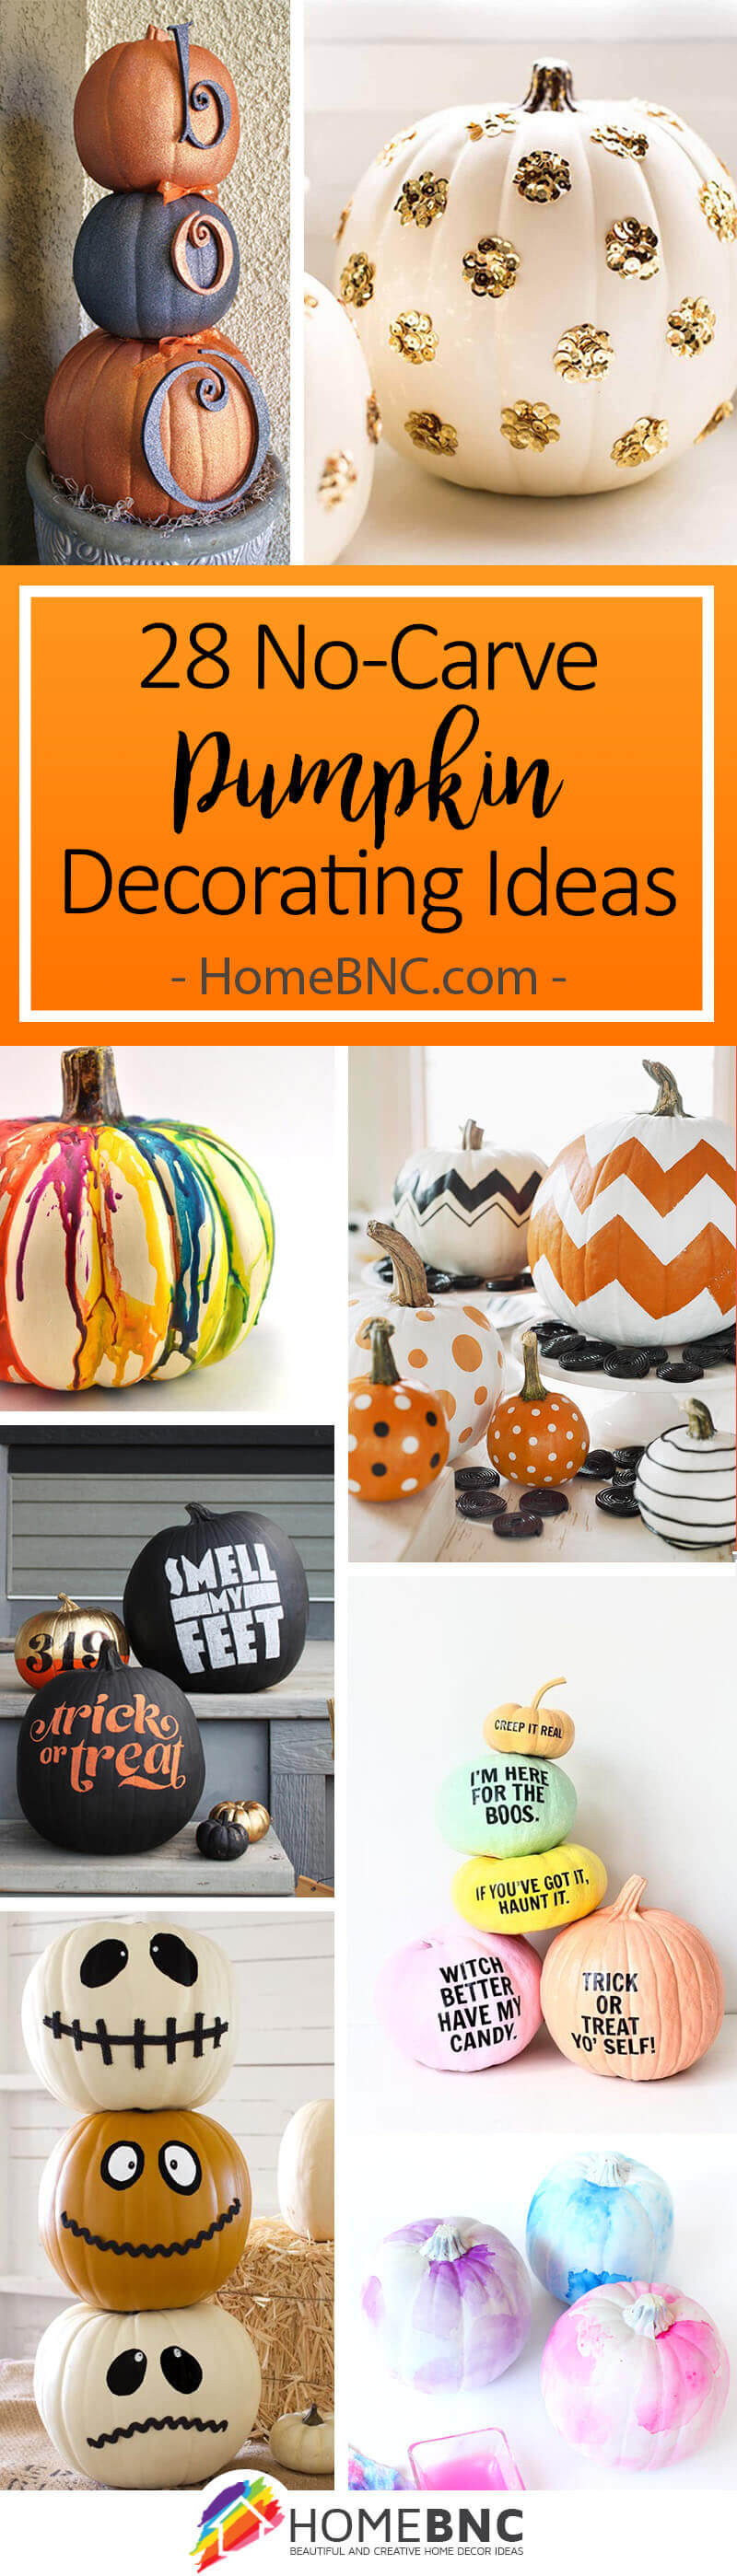 28 Best No Carve Pumpkin Decorating Ideas And Designs For 2019